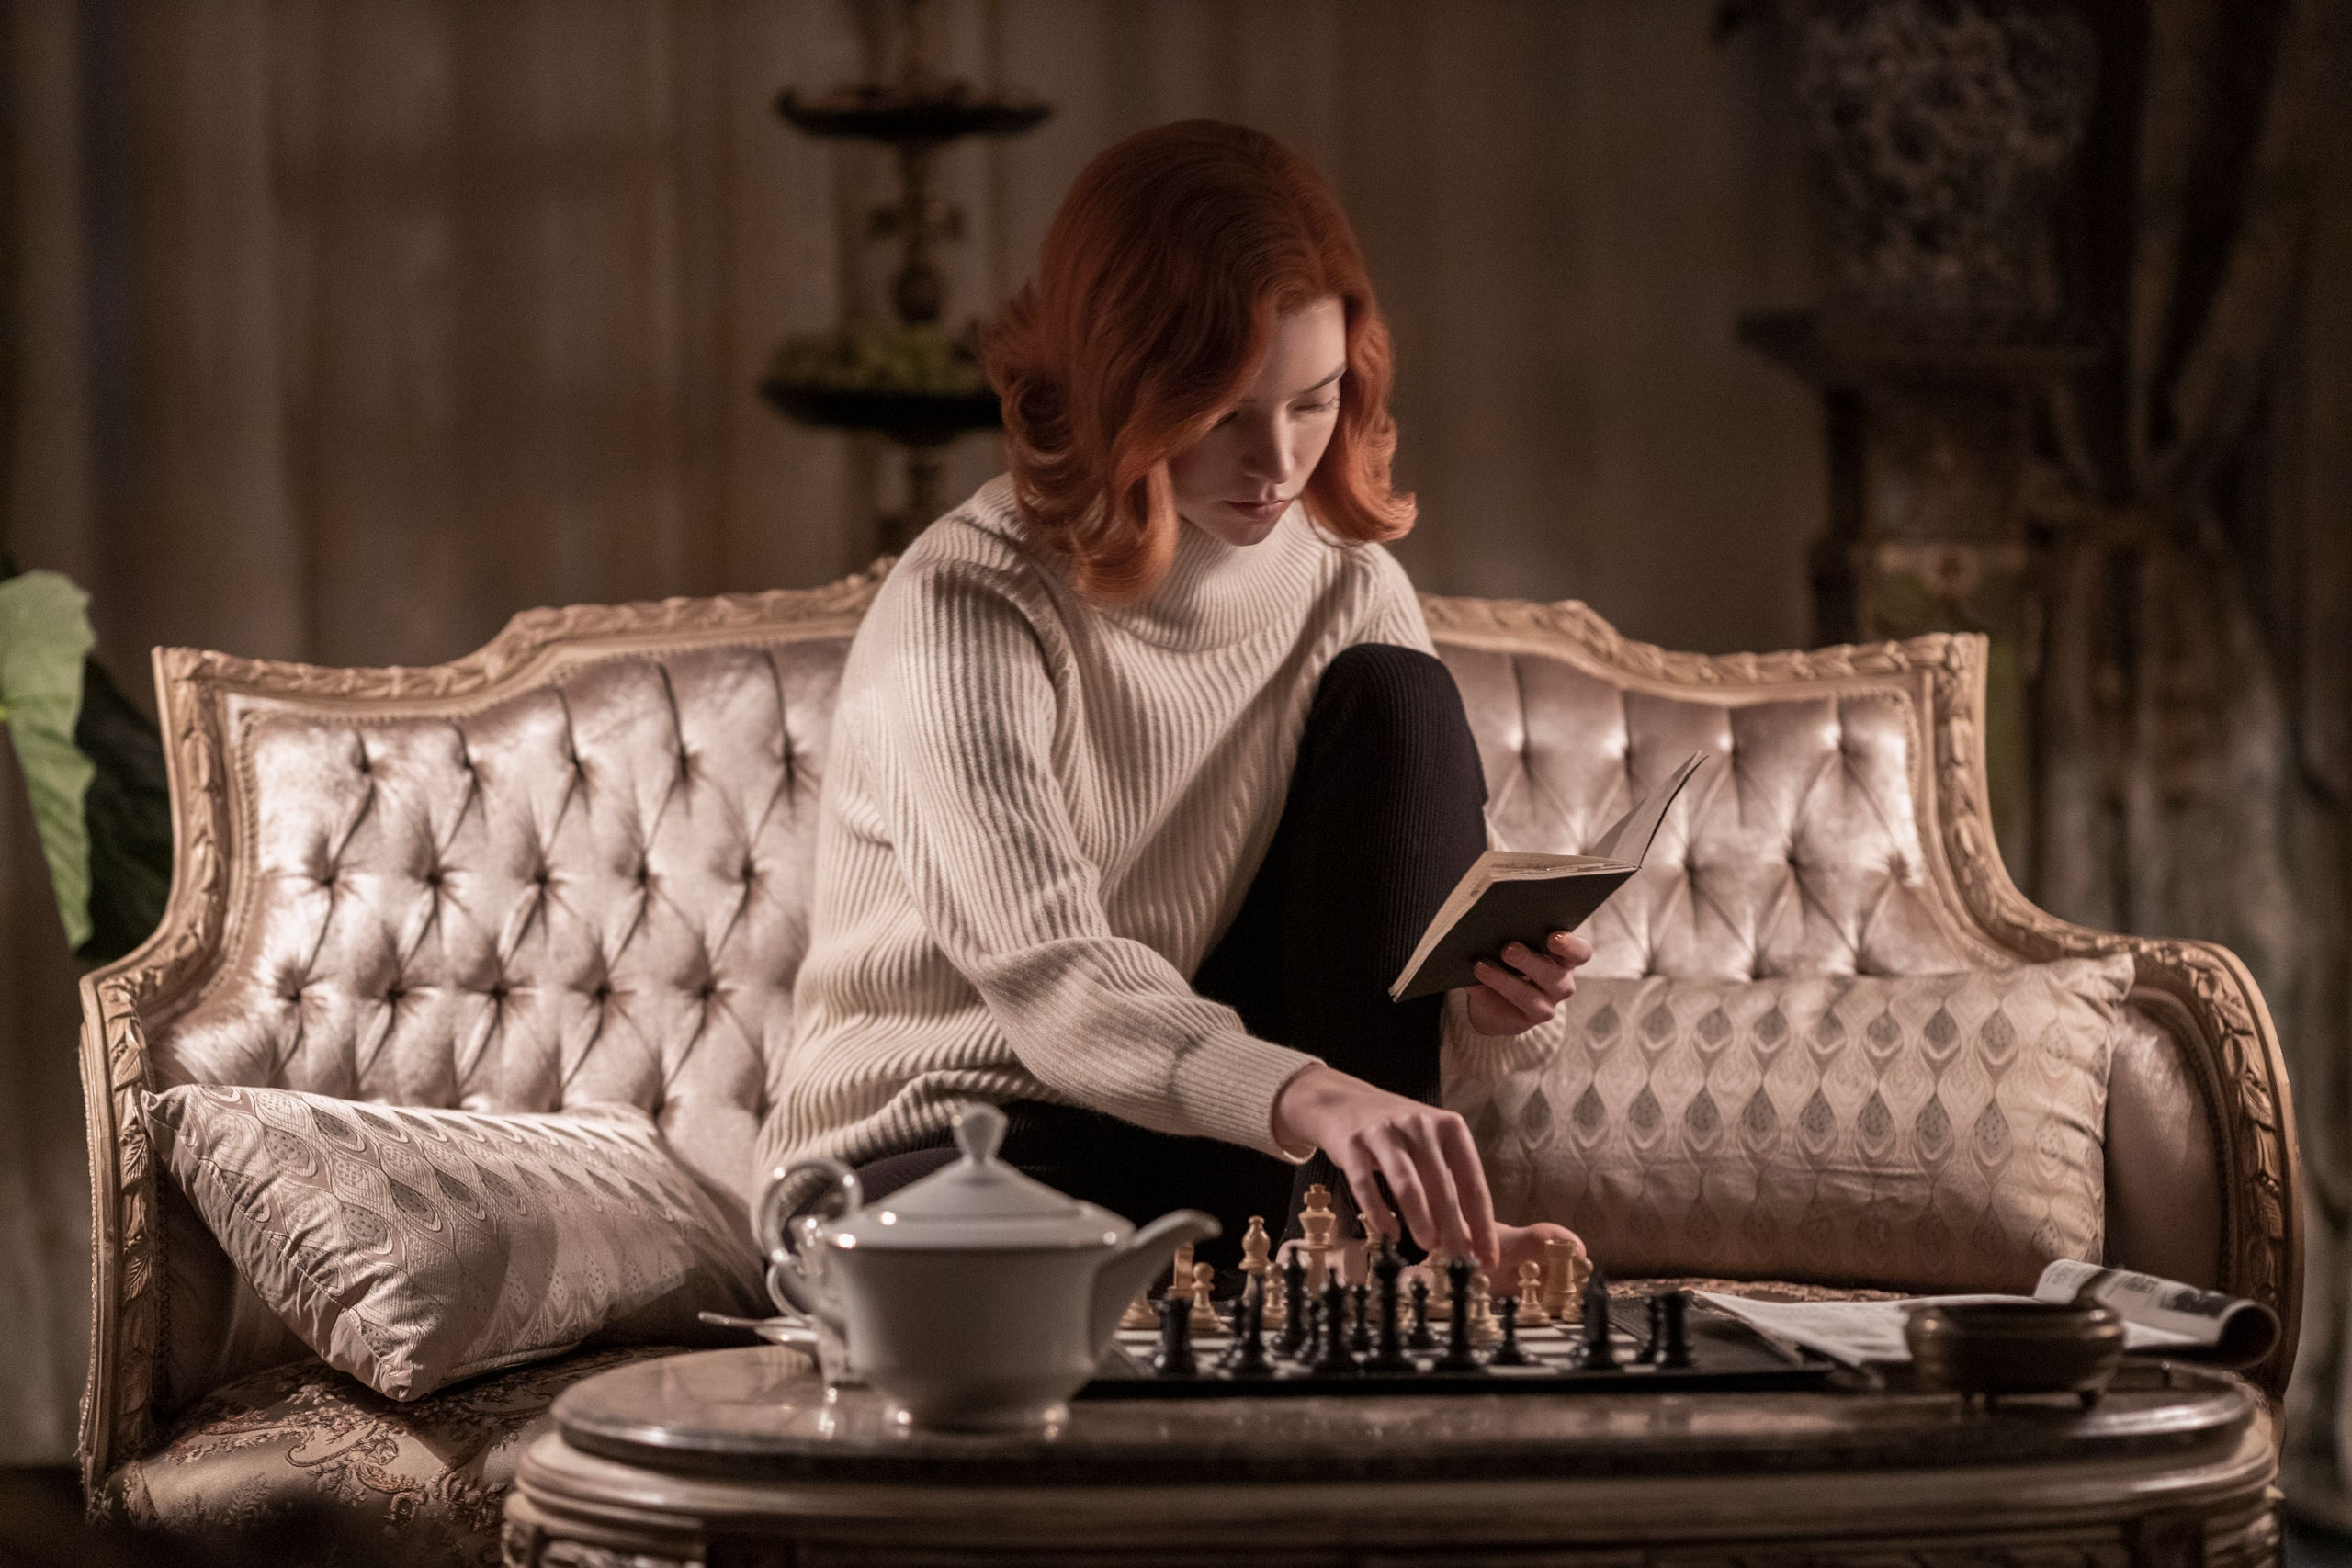 Beth reading a book, practicing on her chess board at home